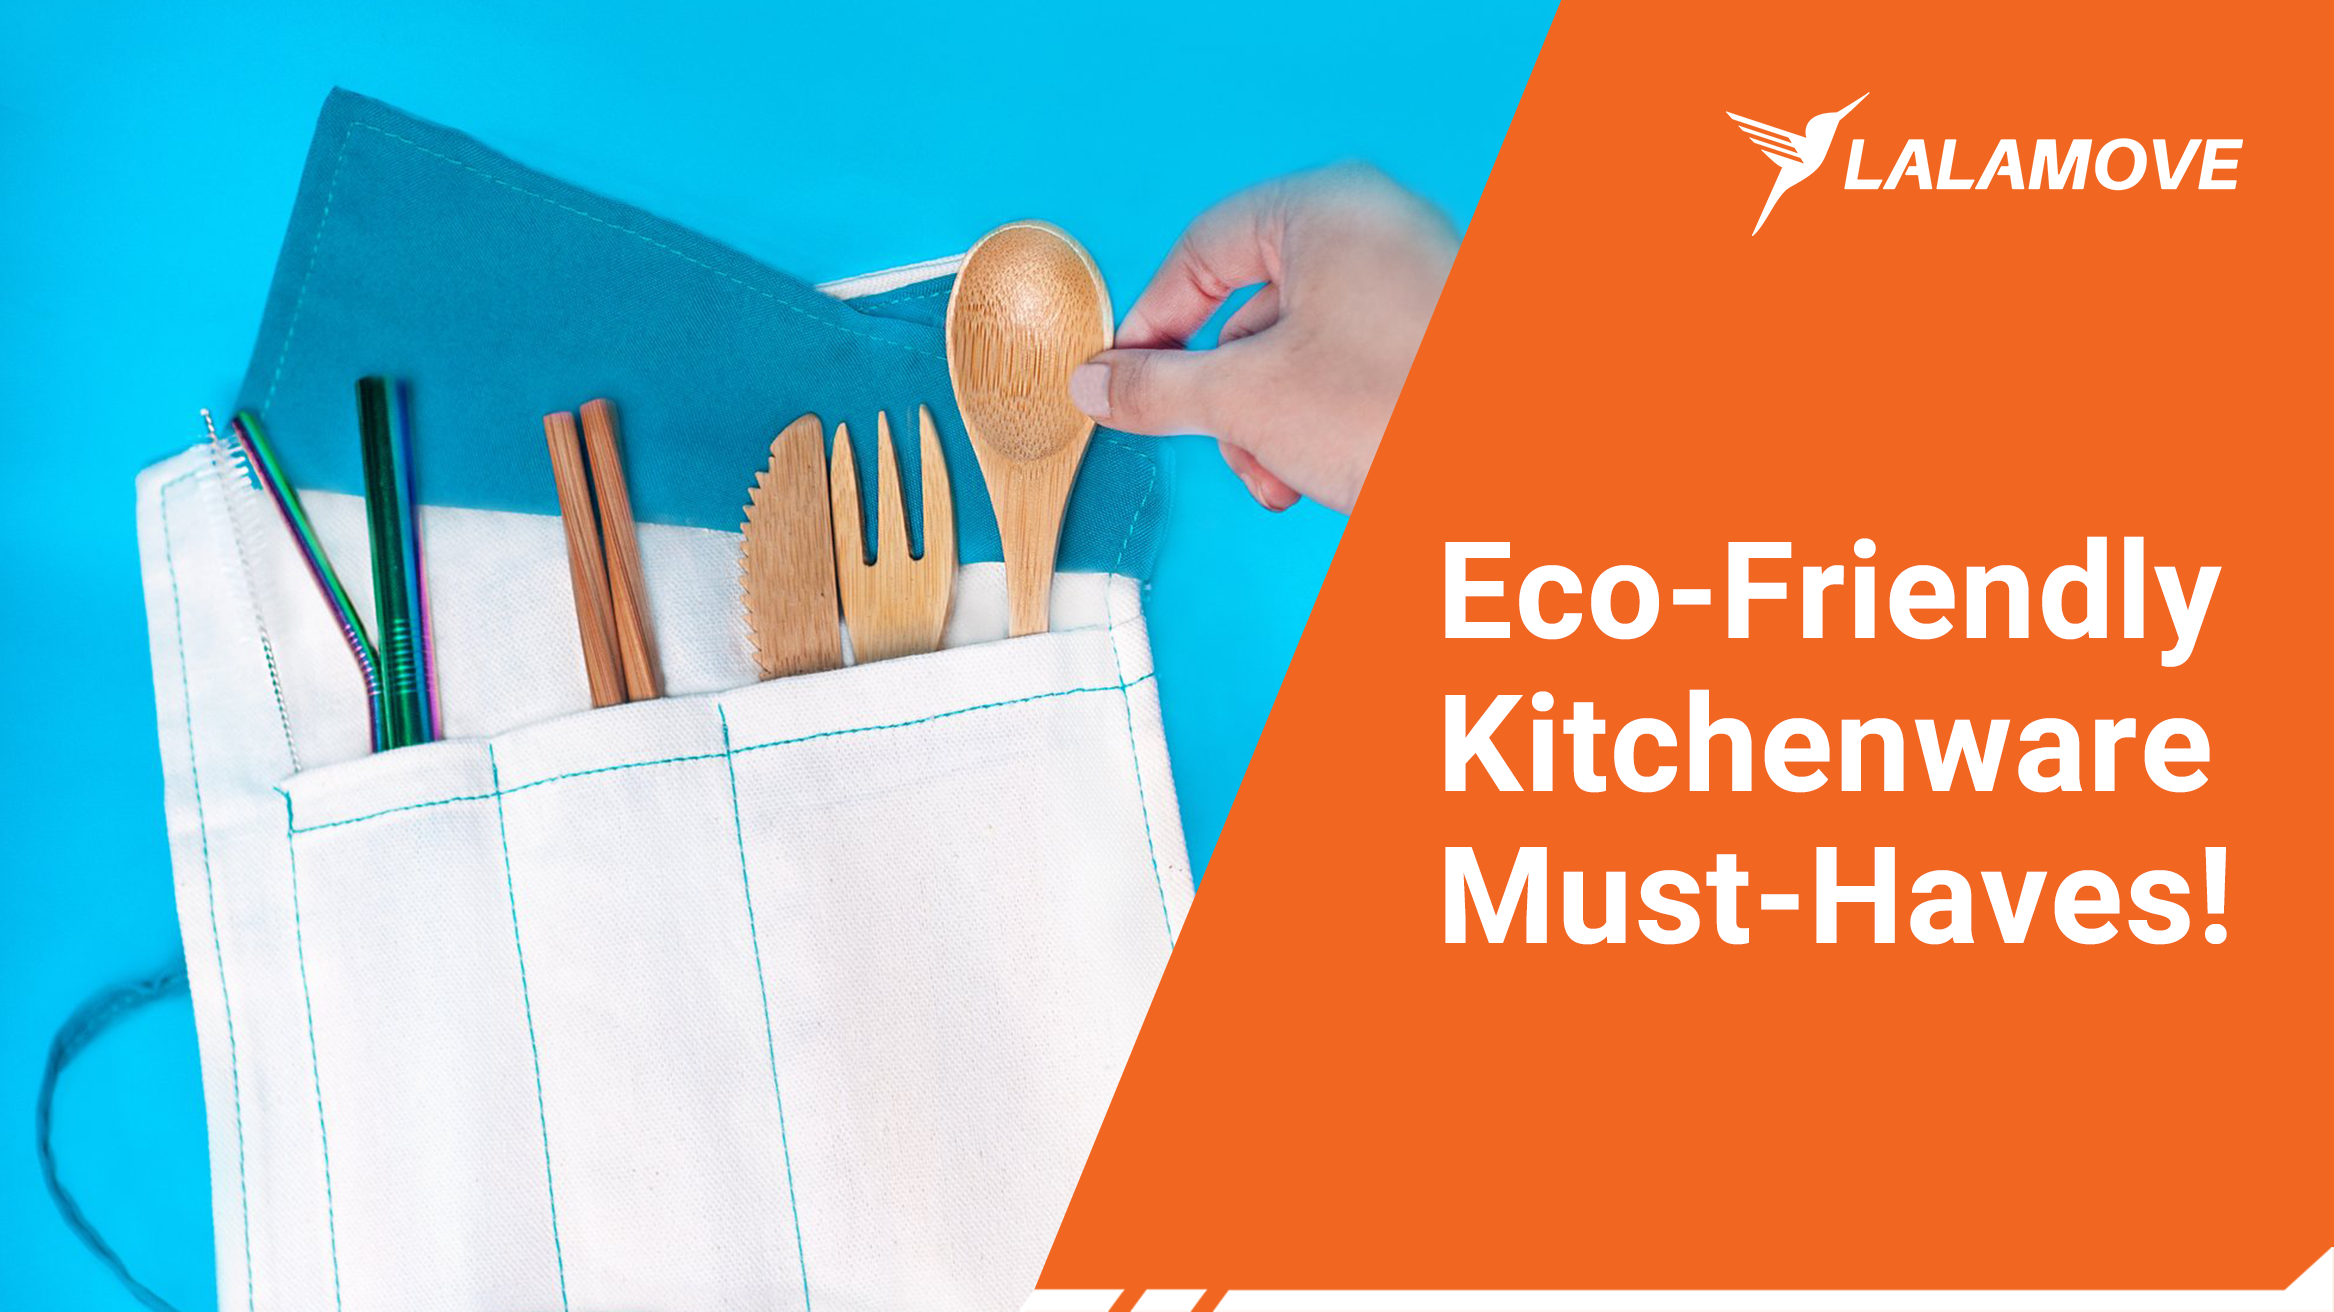 3 Eco-Friendly Kitchenware and Where to Get Them